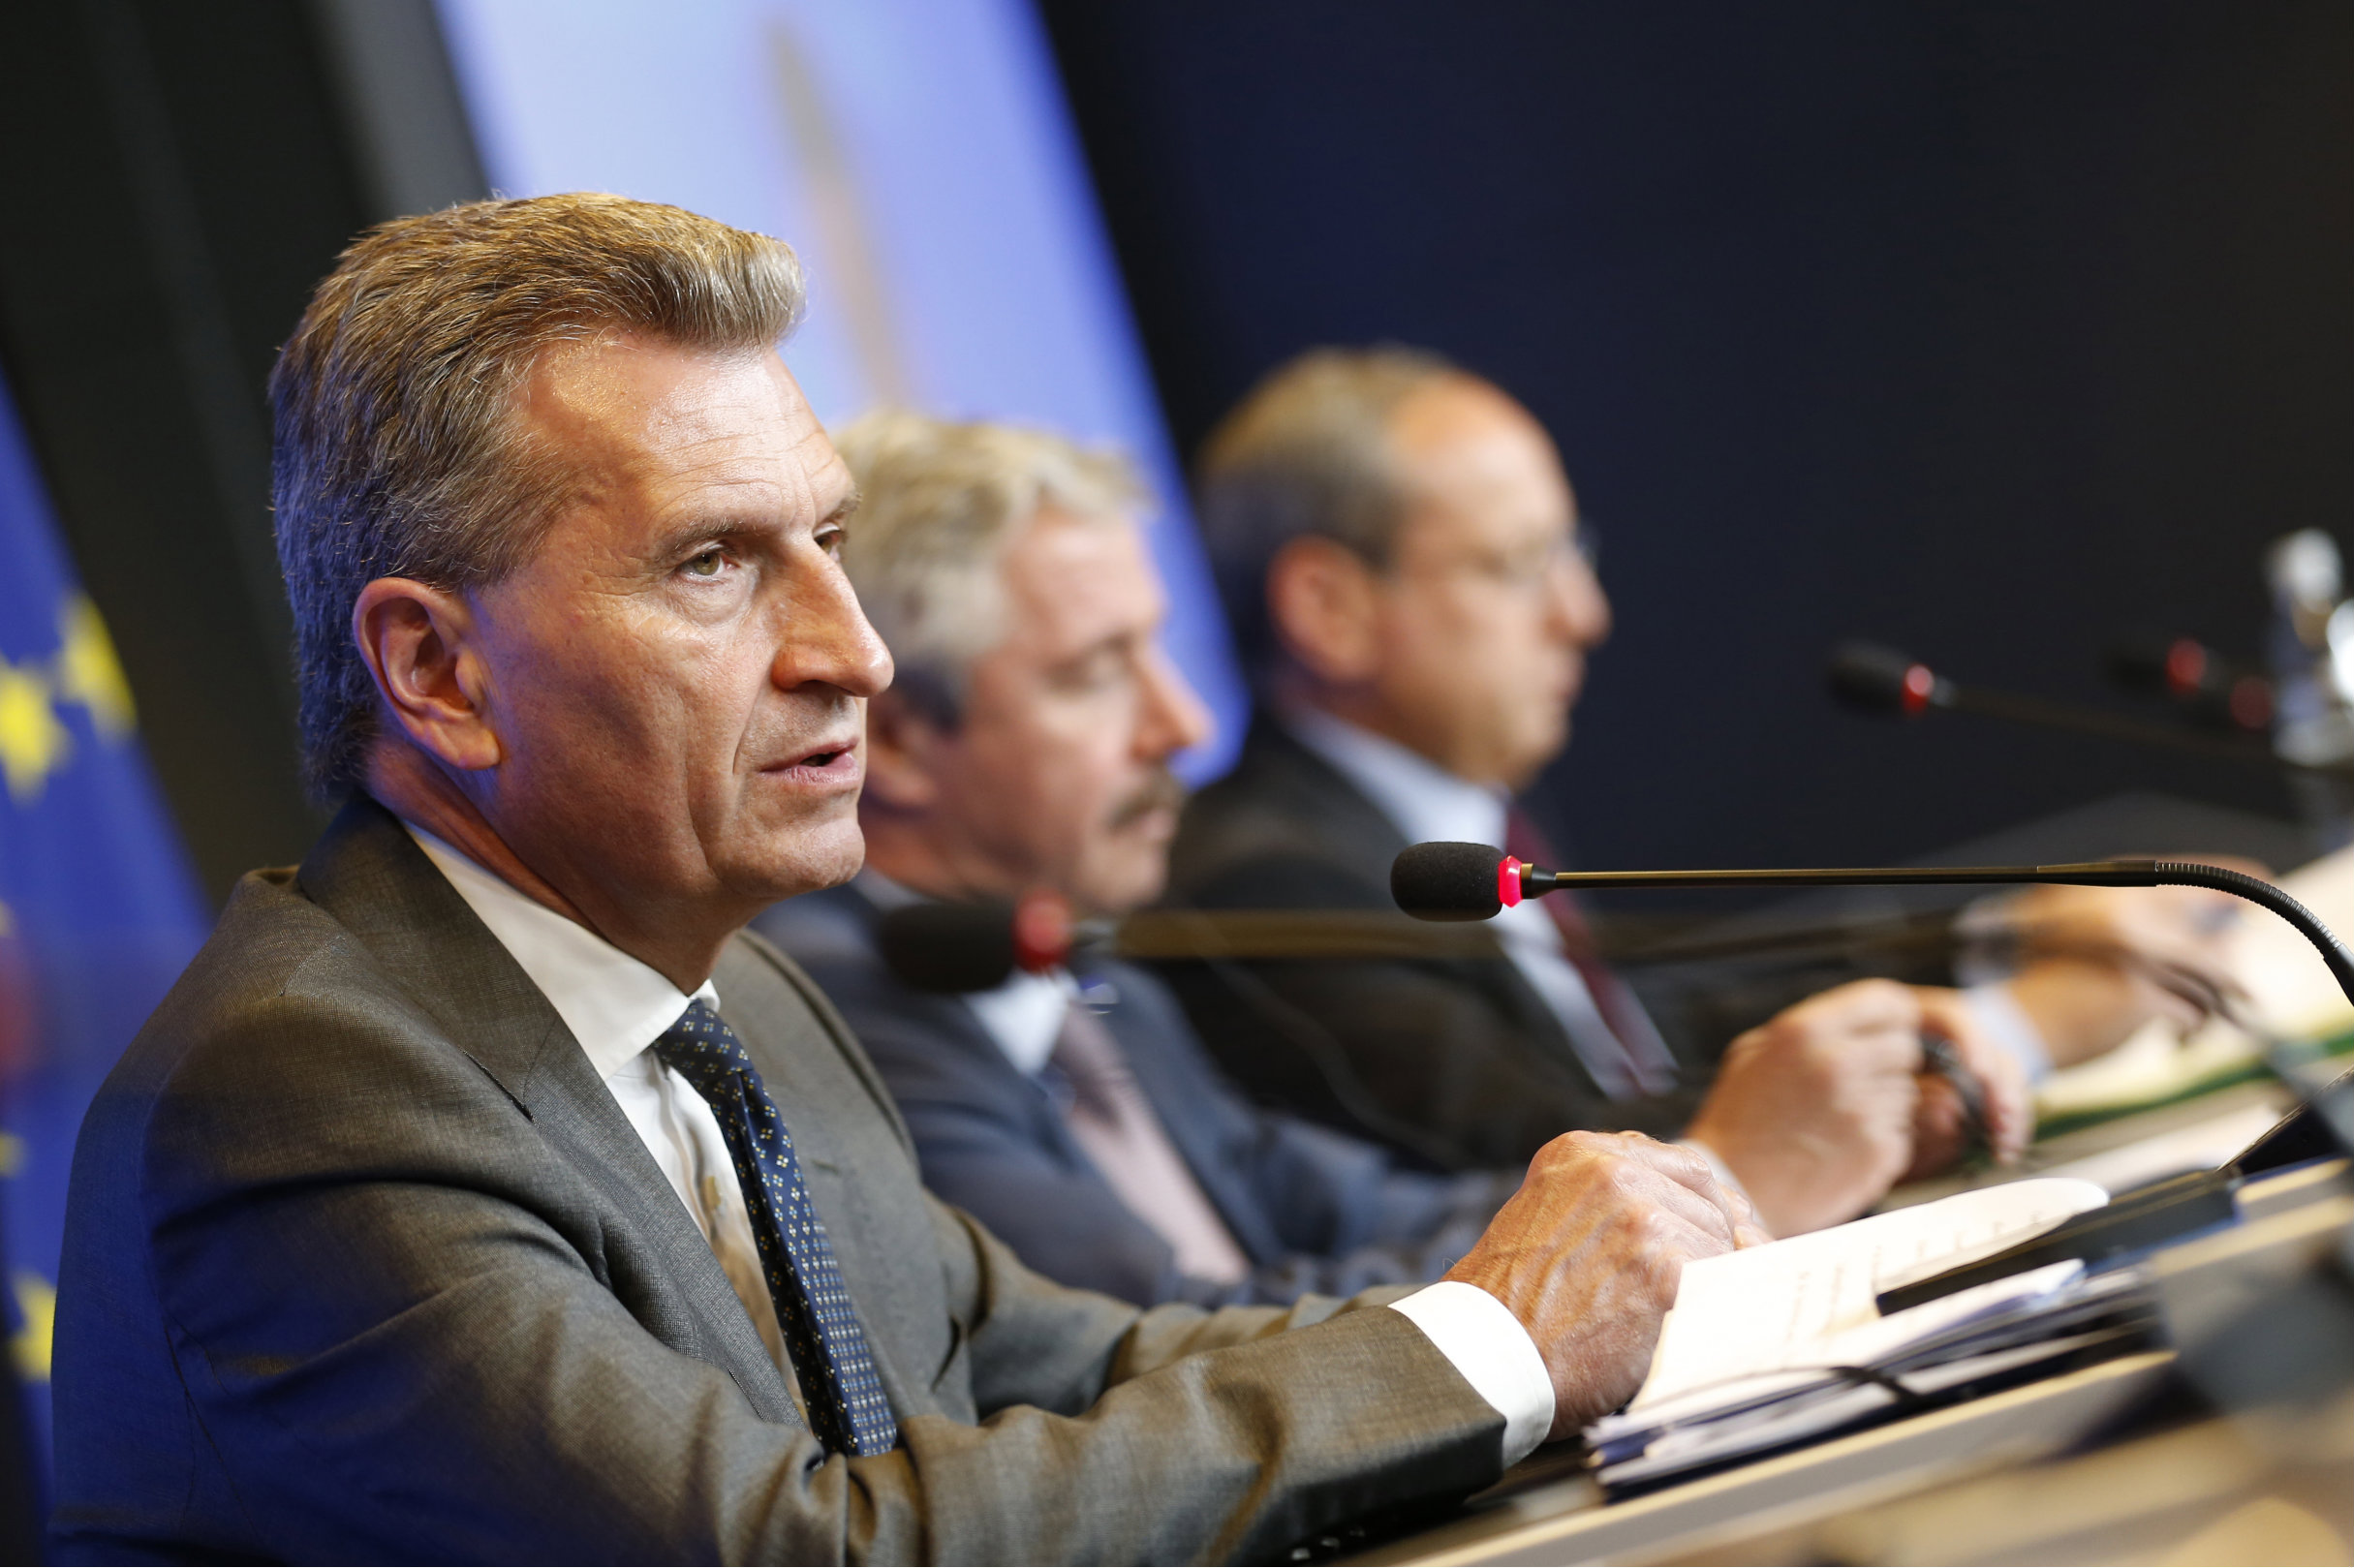 Energy Commissioner Günther Oettinger. [The Council of the European Union]